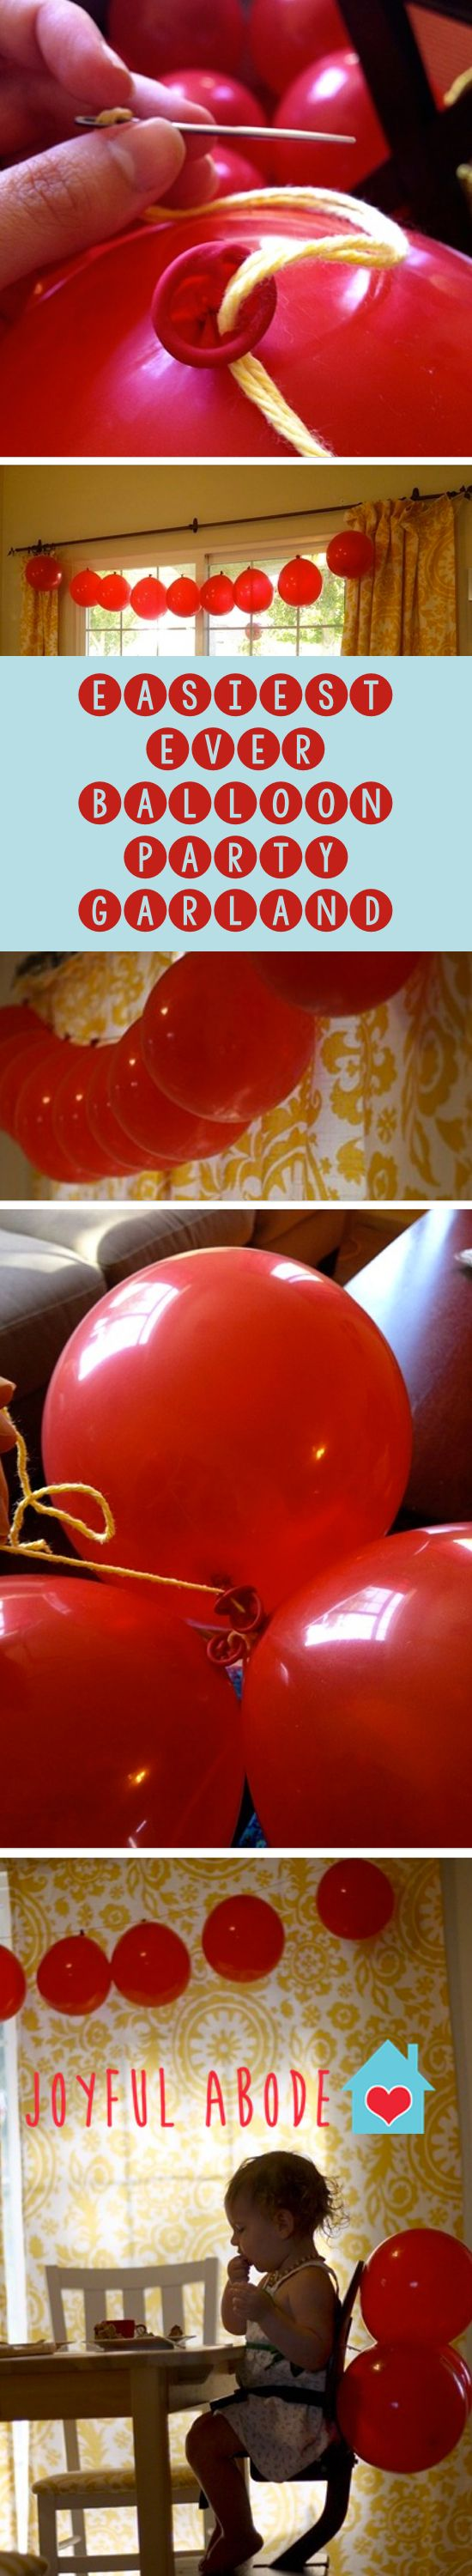 easiest EVER balloon party garland. Make garlands to hang, or bunches to decorate with. I'm going to do this for my gazebo at events!